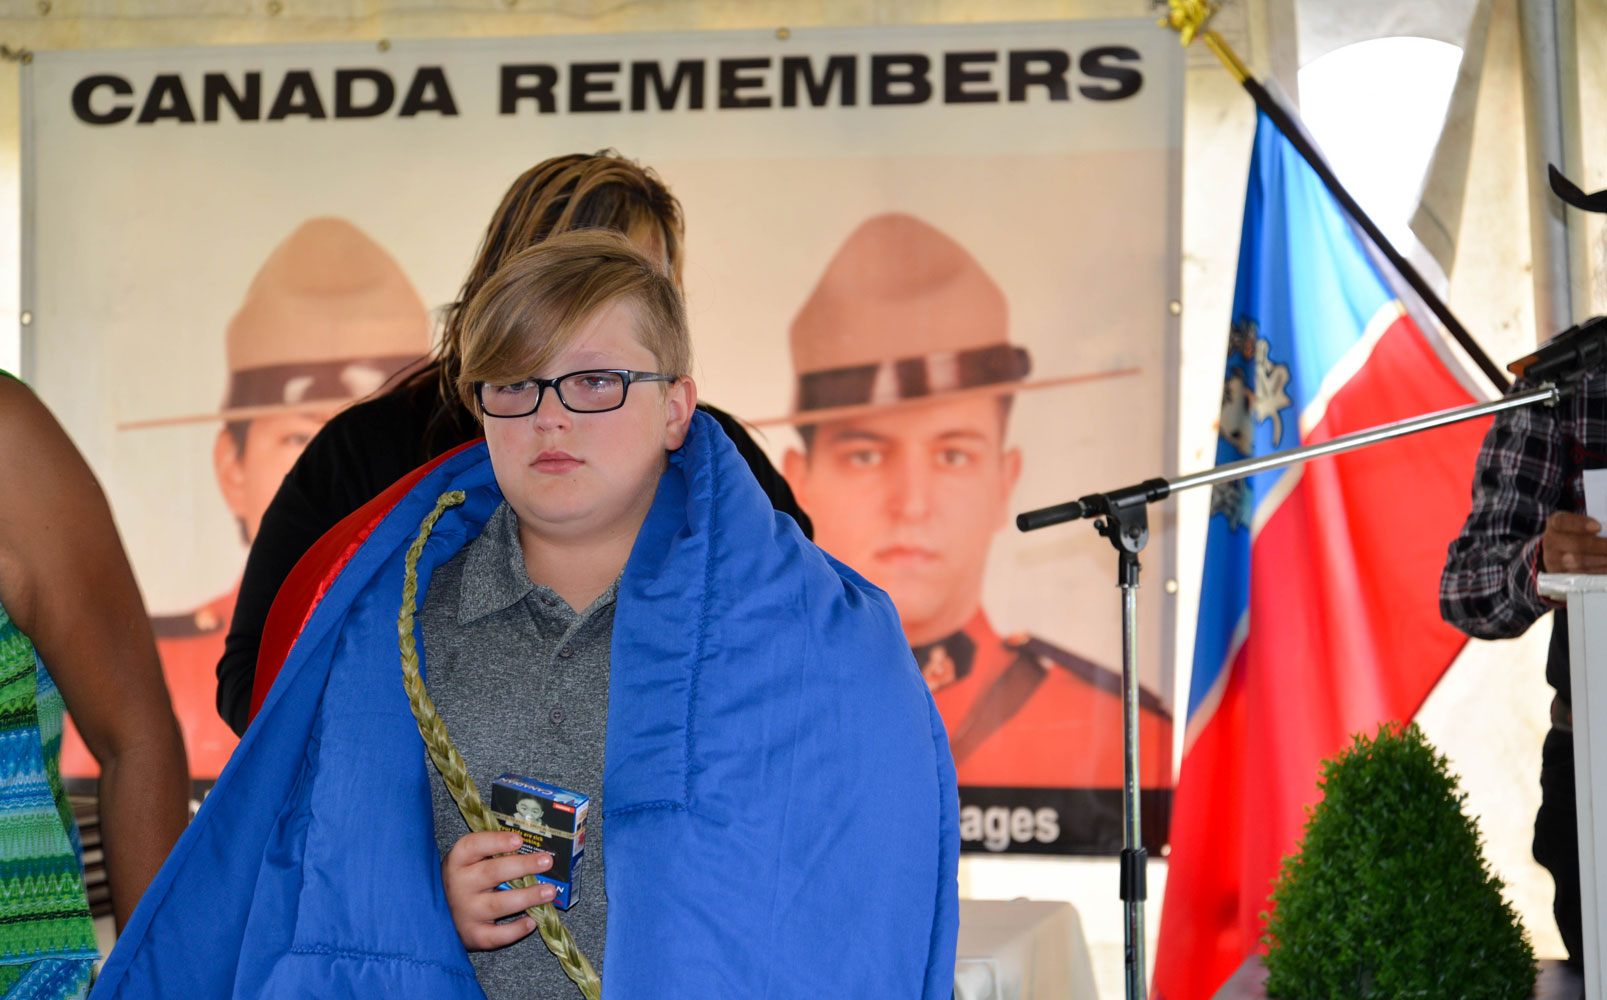 Luca was presented with a star blanket. He stands for an honour song with his father in the background.